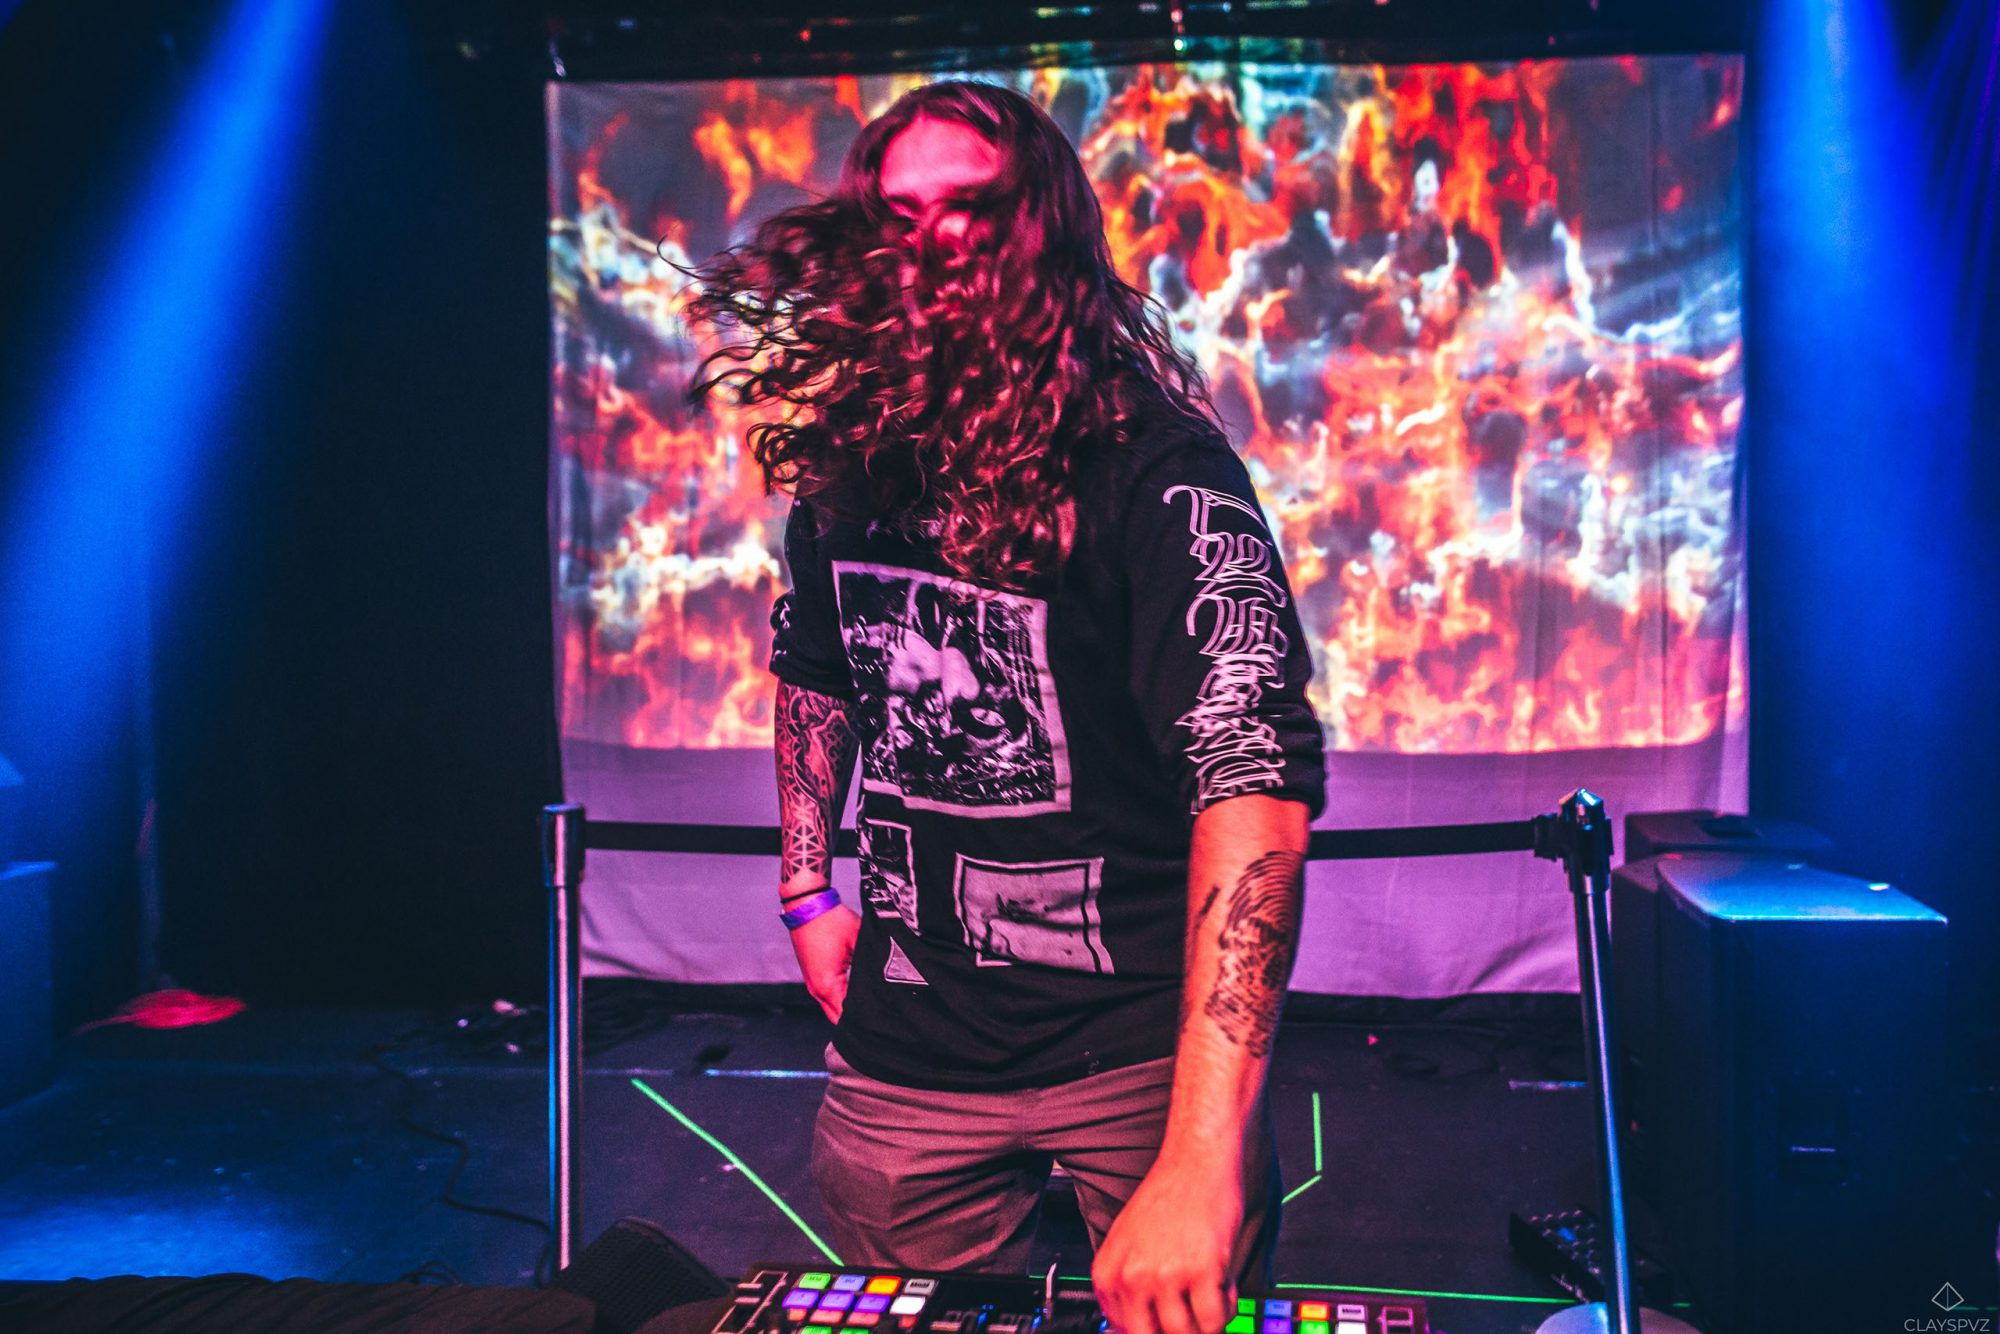 RAvenscoon plays Ableton with live image projection